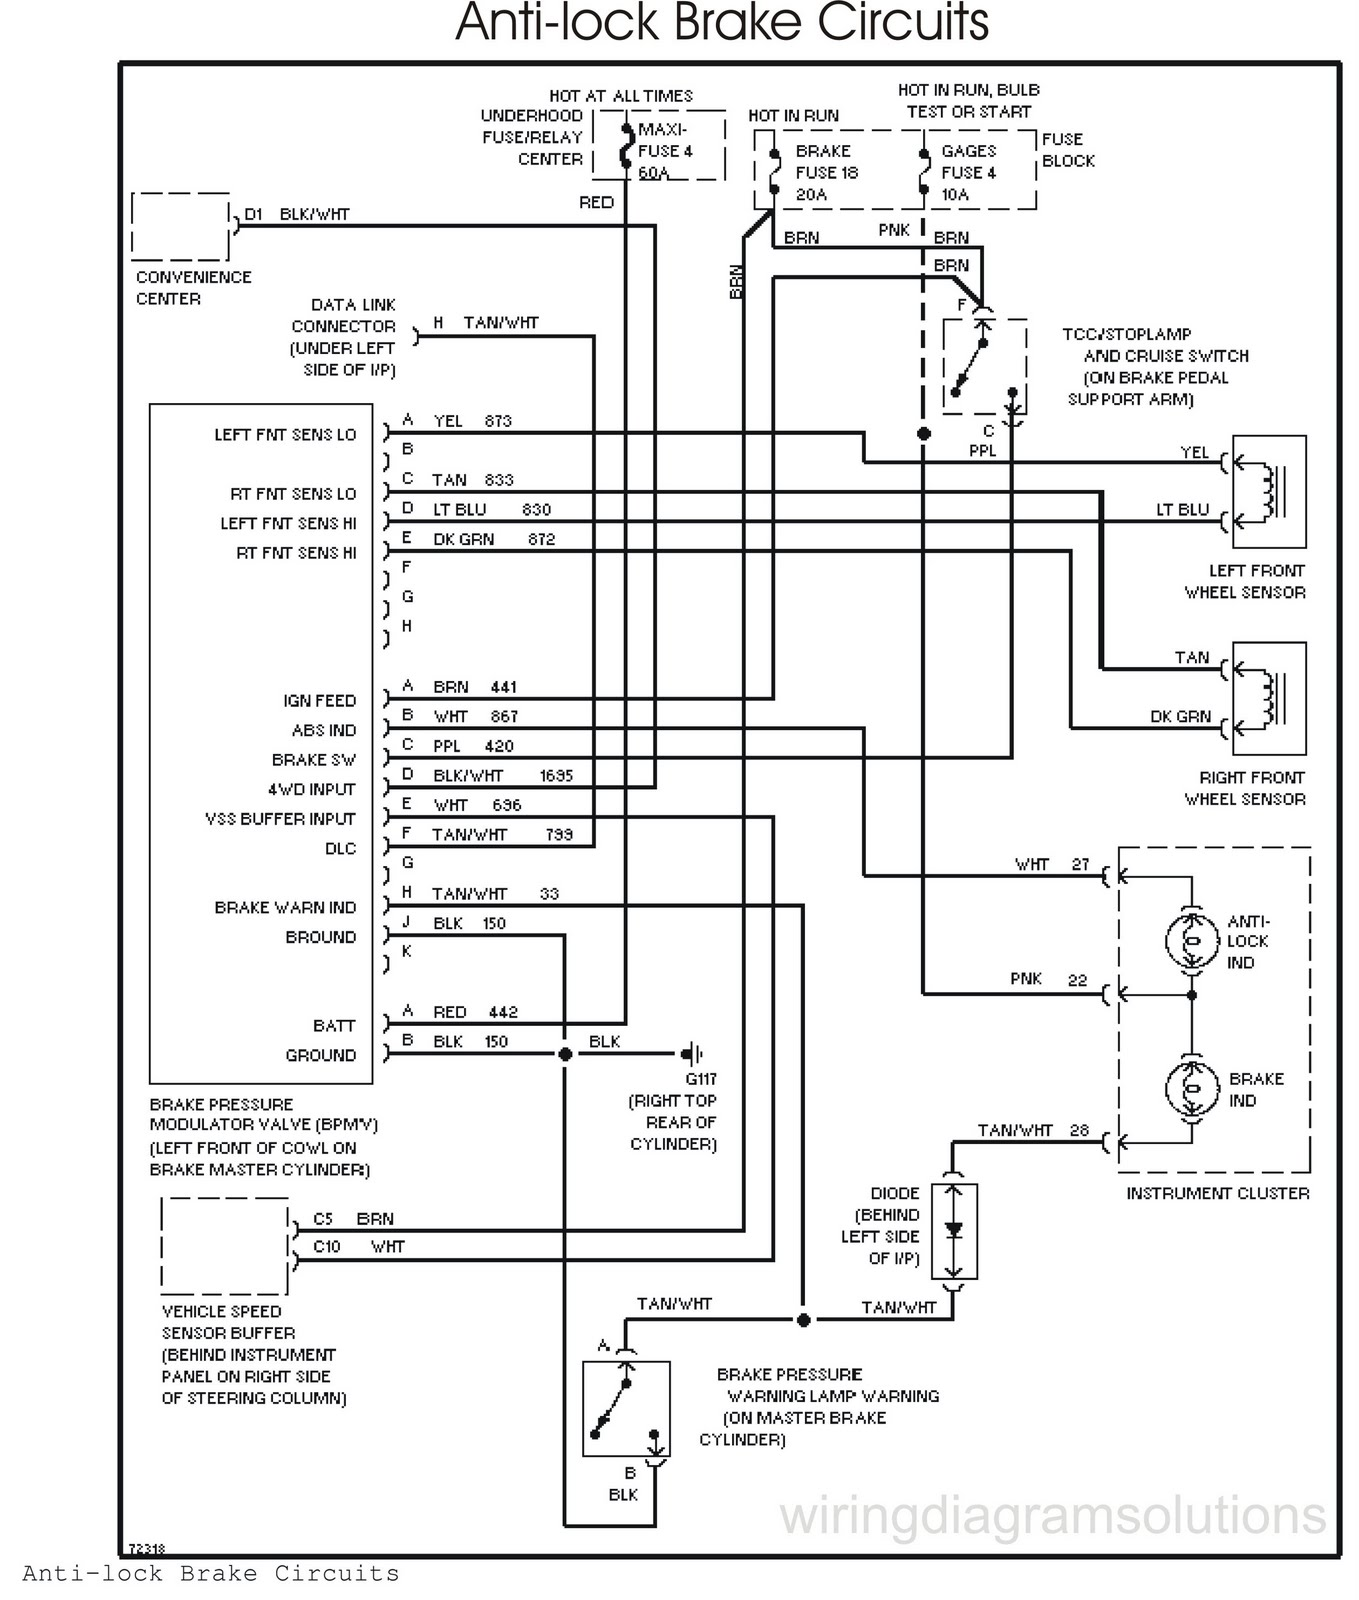 The 1995 Chevrolet Tahoe Wiring Schematic Antilock Brake